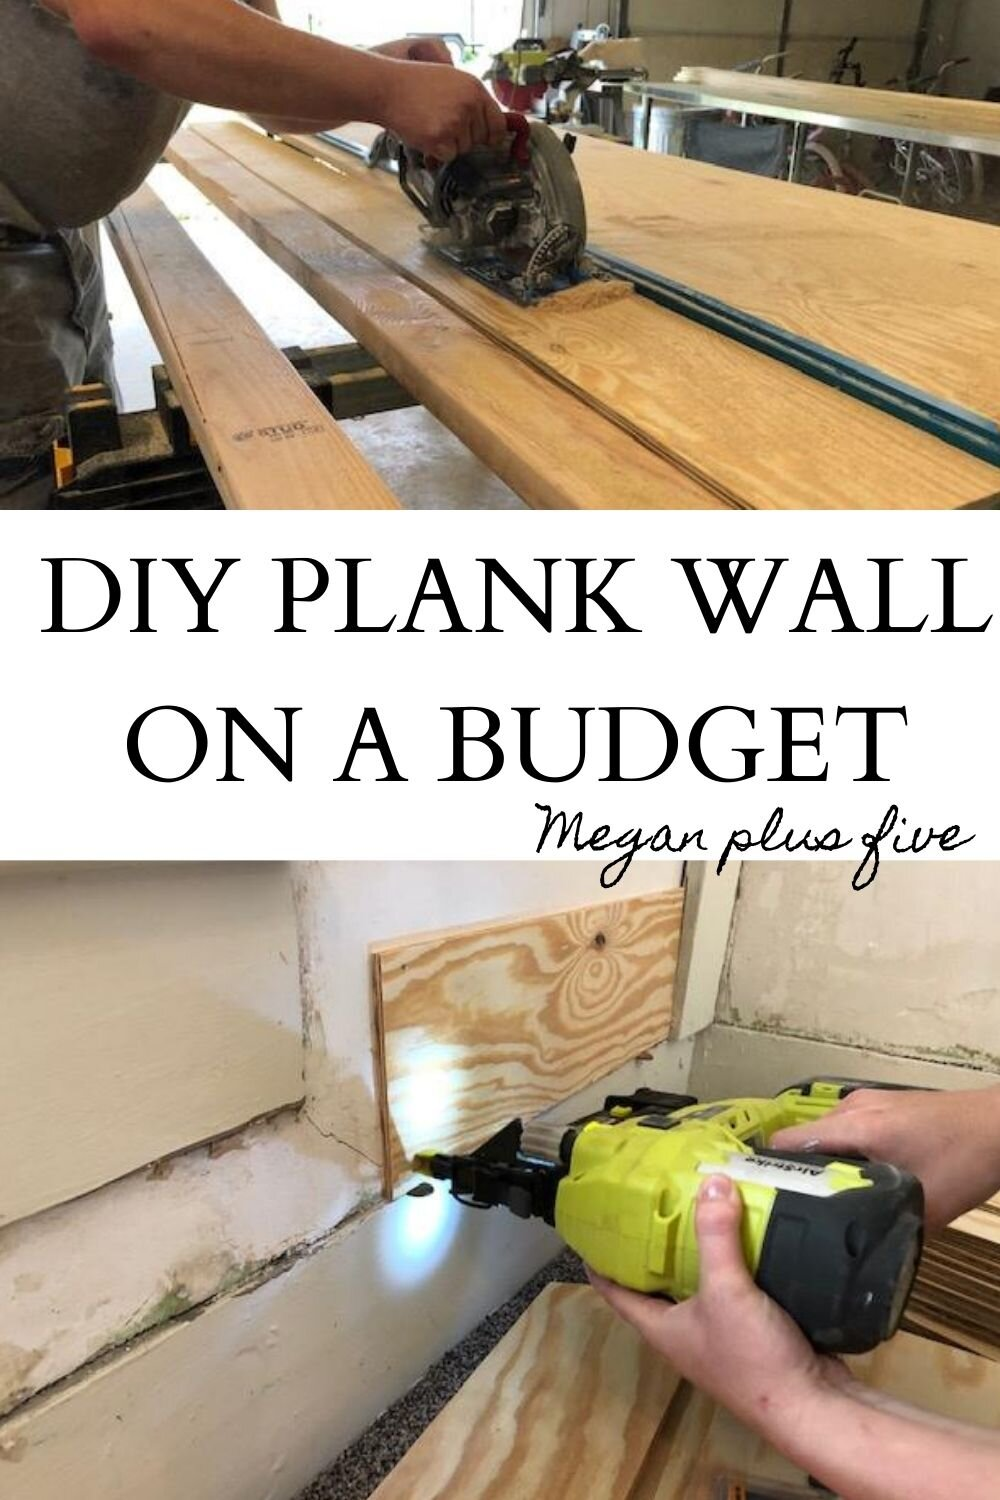 DIY plank wall, how to make your own plank wall on a budget. How we made a faux plank wall for less than $50, shoe string budget bedroom remodel. Plywood panel planked wall for your home.